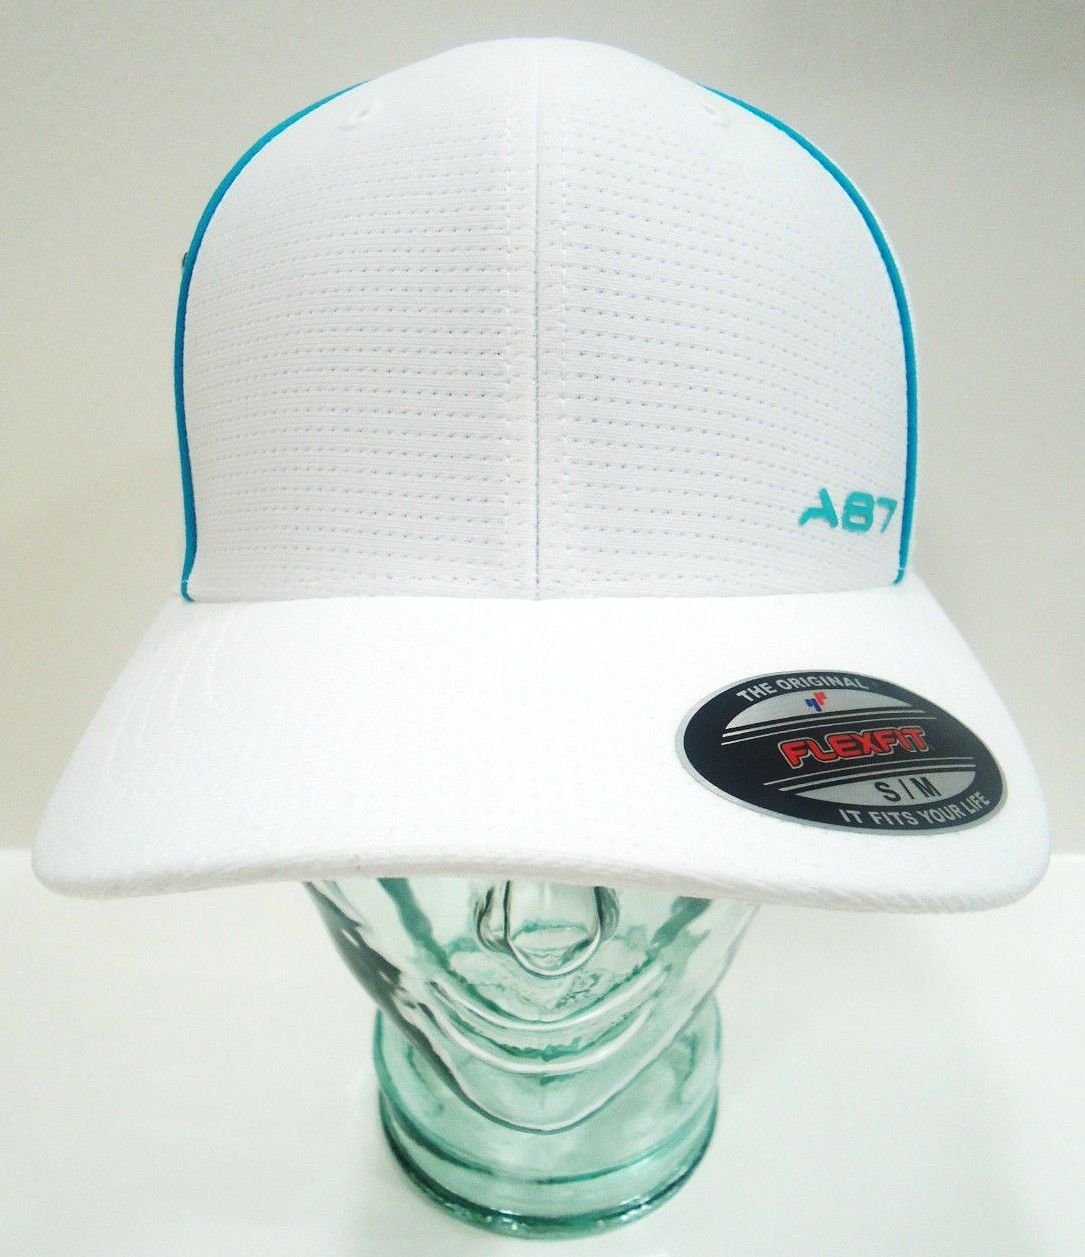 AREOPOSTALE - FLEXFIT - WHITE - AQUA - FITTED - BASEBALL - CAP - HAT - NEW - S/M